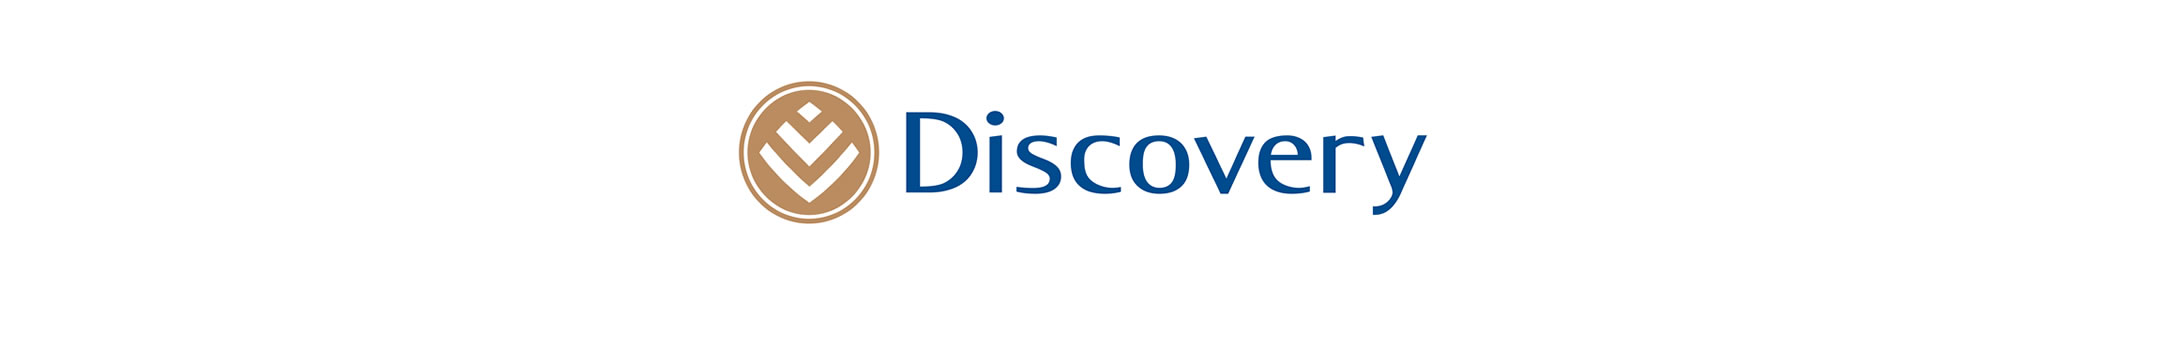 Discovery Business Insurance, a division of Discovery Insure, is a commercial insurer that comprehensively protects businesses through innovative technology-enabled solutions. This business insurance product is underpinned by Discovery's shared-value model of insurance which uses incentive-based insurance principles to encourage behaviour change that reduces the insurance risks and results in savings for the insurer. These savings are then shared with clients to further incentivise behaviour change.